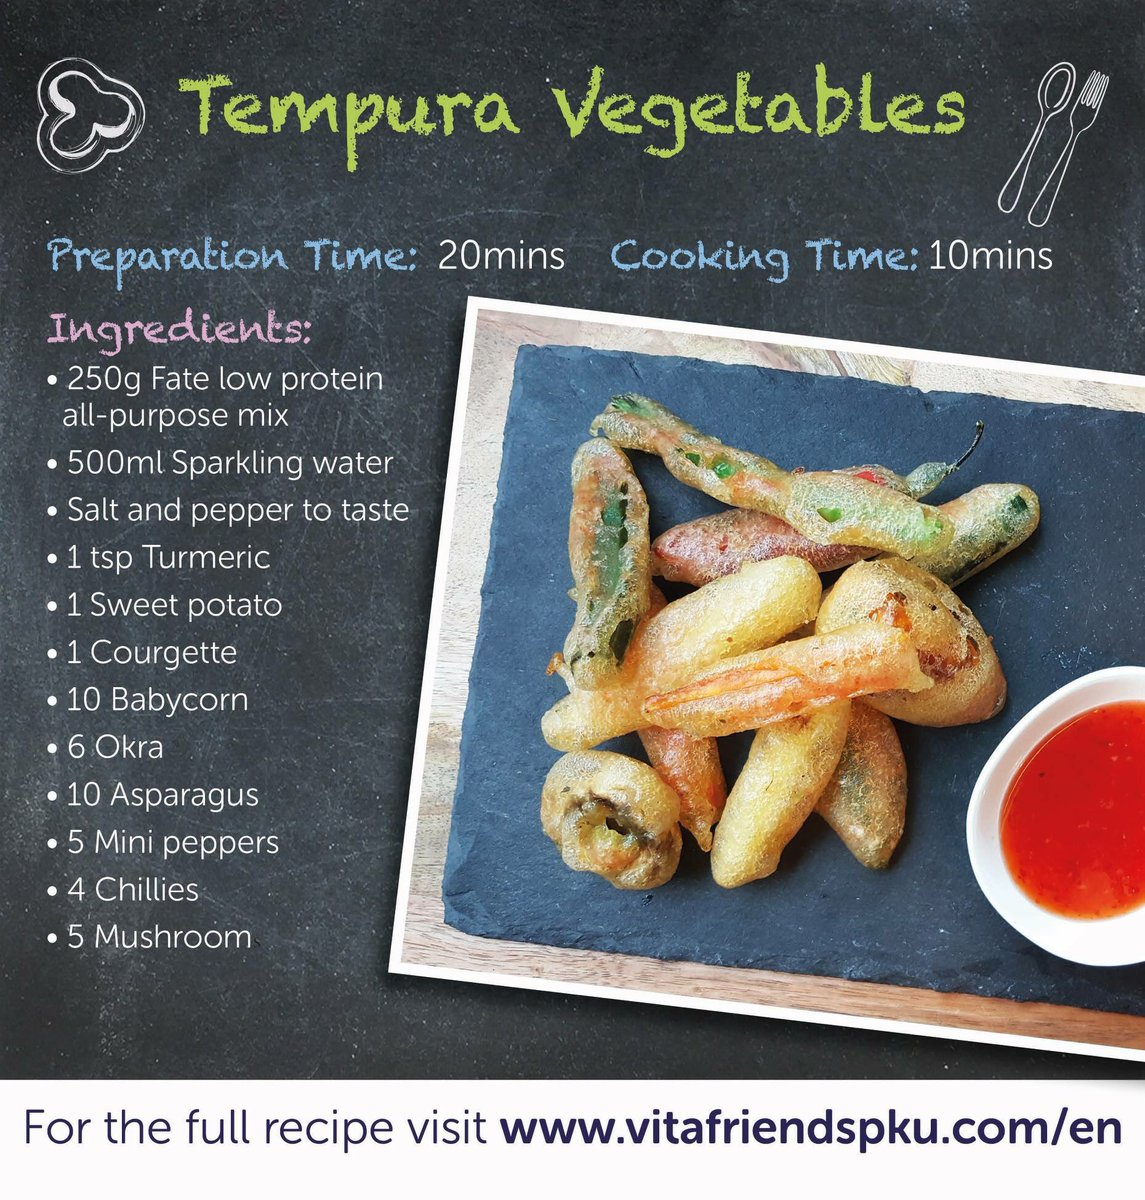 Today is the last day of Fakeaway May.. but don&#39;t worry, these Tempura Vegetables are the perfect fakeaway if you fancy something a little bit different. Link is here:  https://www. vitafriendspku.com/en/recipes/low -protein-tempura/ &nbsp; …  What&#39;s been your favourite Fakeaway recipe everyone? #pku #pkurecipes #FakeawayMay<br>http://pic.twitter.com/kNGStYgGEM